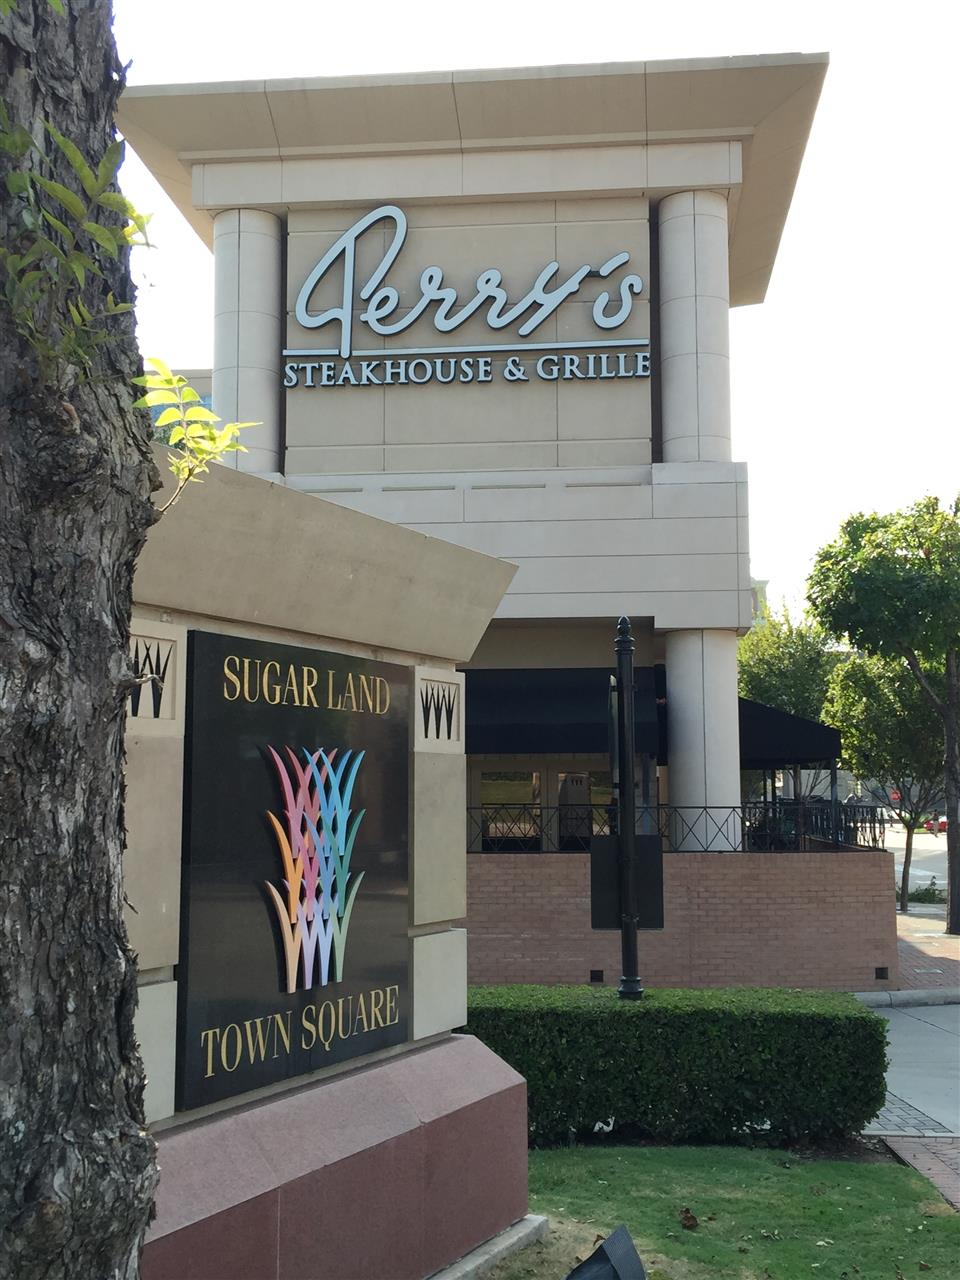 Perry's Steakhouse in Sugar Land's Town Square. Sugar Land, TX